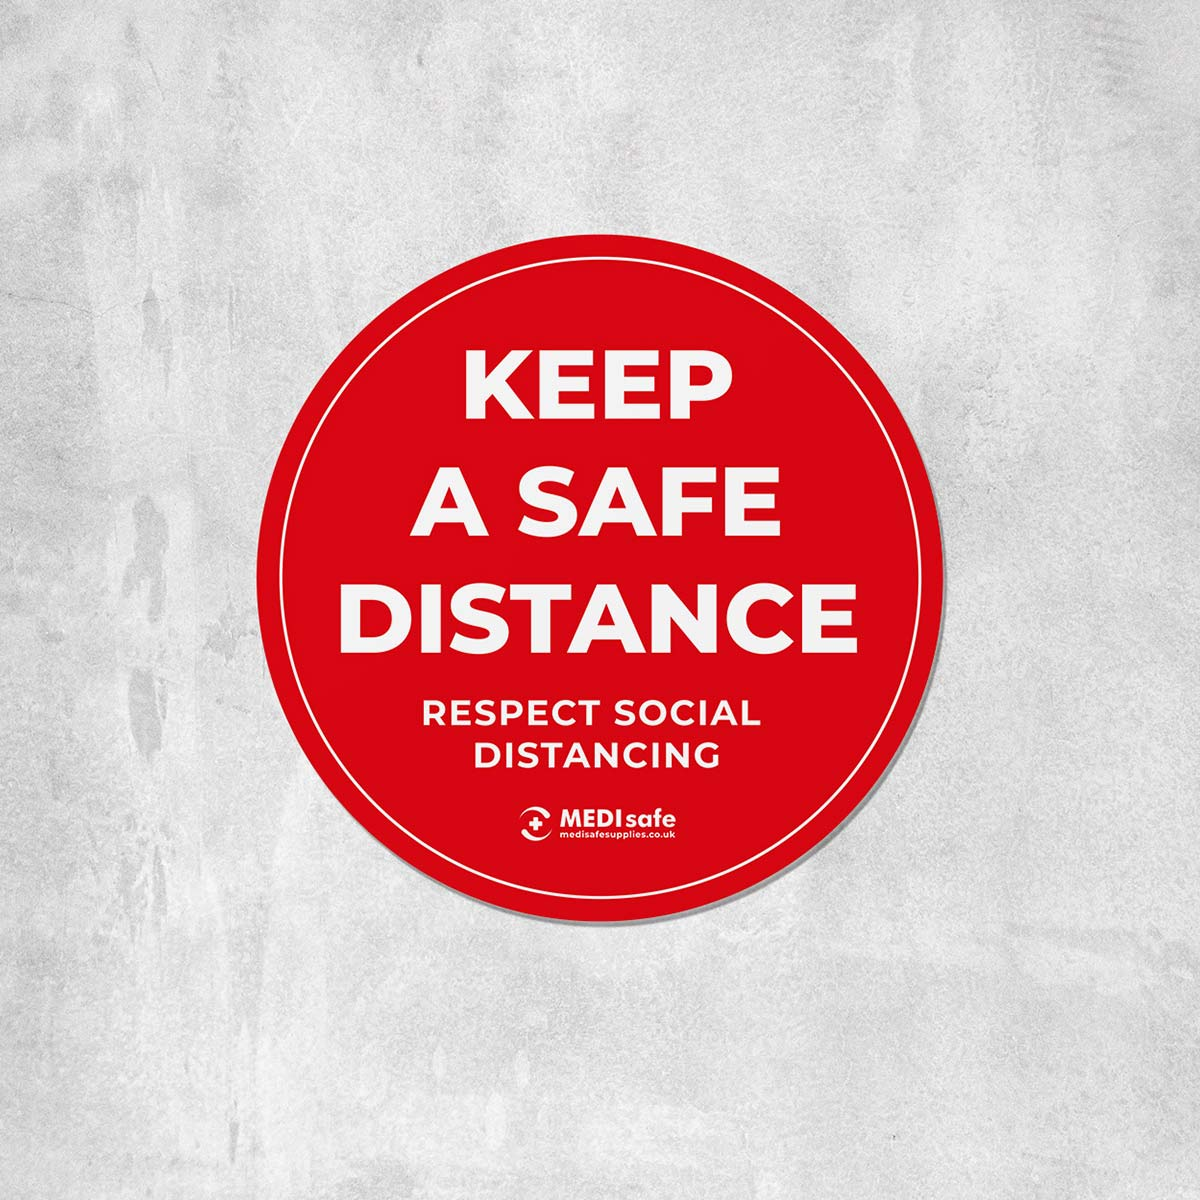 Keep a safe distance floor sticker for social distancing - red